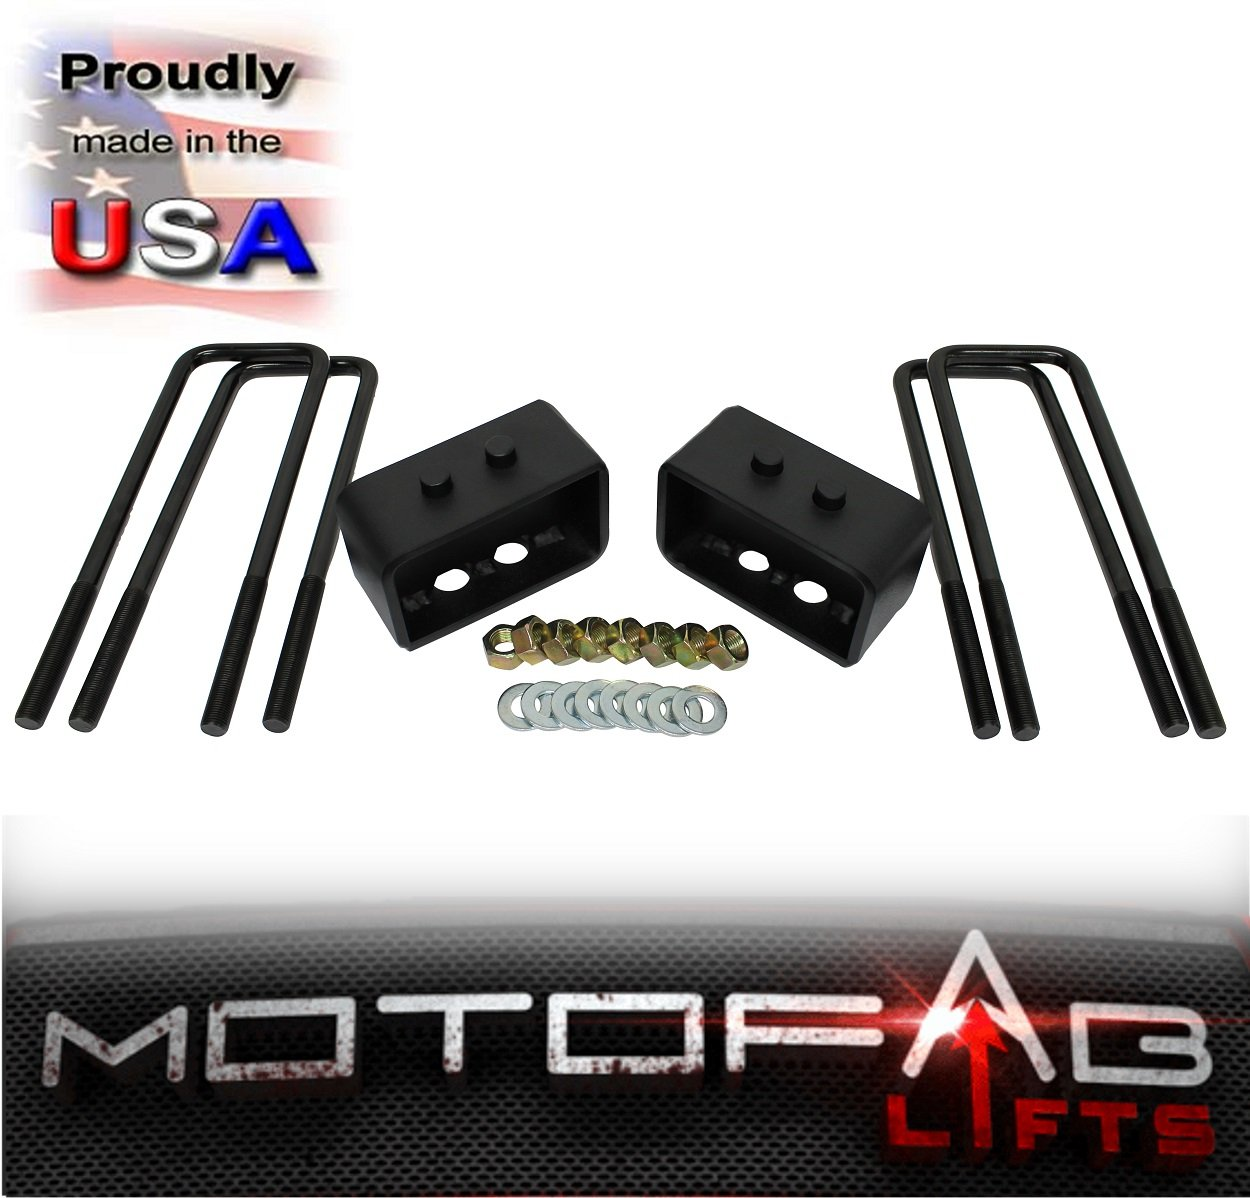 MotoFab Lifts F150-3F-2R 3 Front and 2 Rear Leveling lift kit for 2004-2014 Ford F150